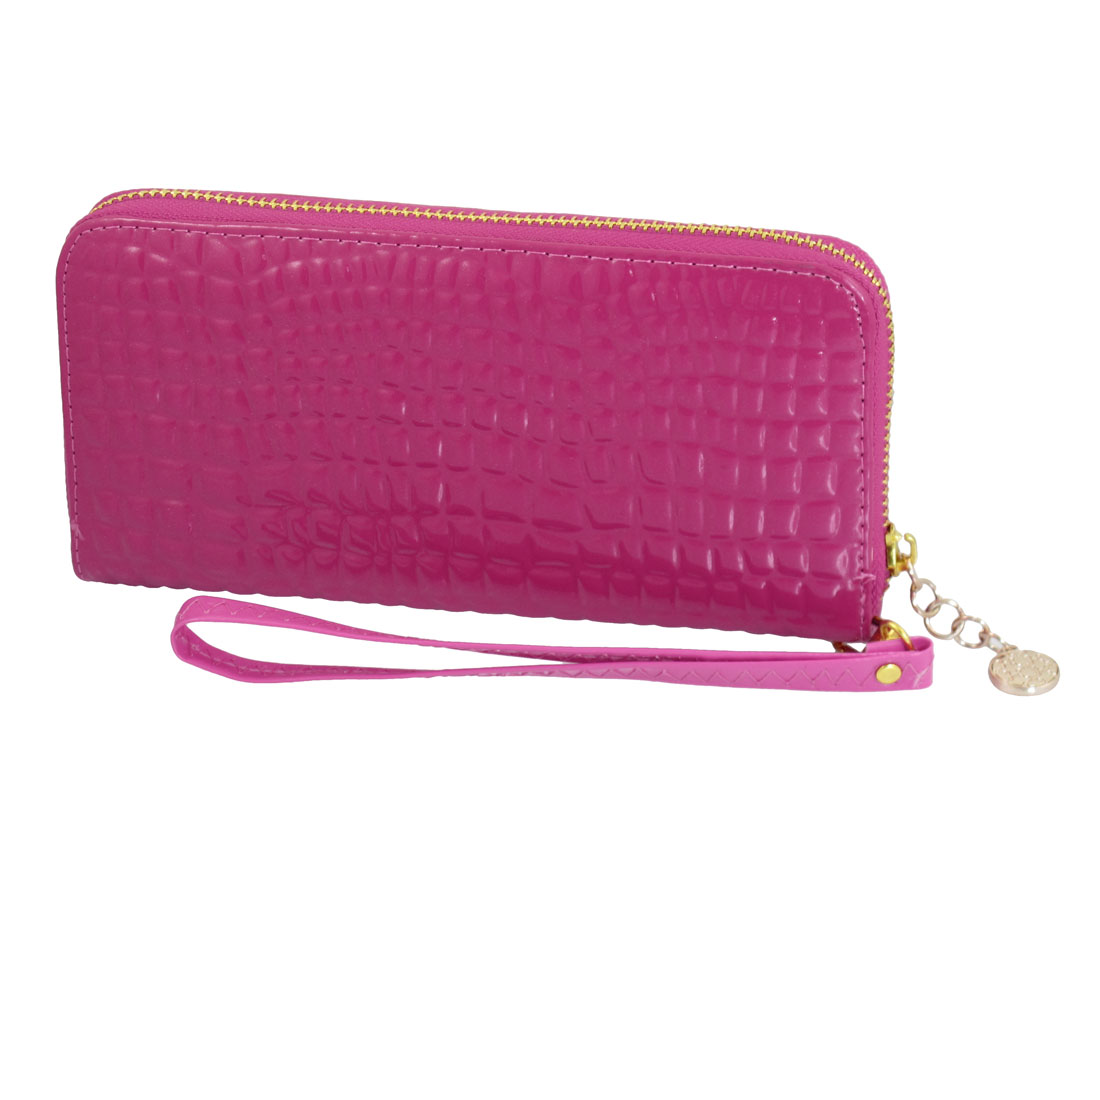 Fuchsia Crocodile Pattern Faux Leather 3 Compartments Zip Up Handbag Purse Wallet